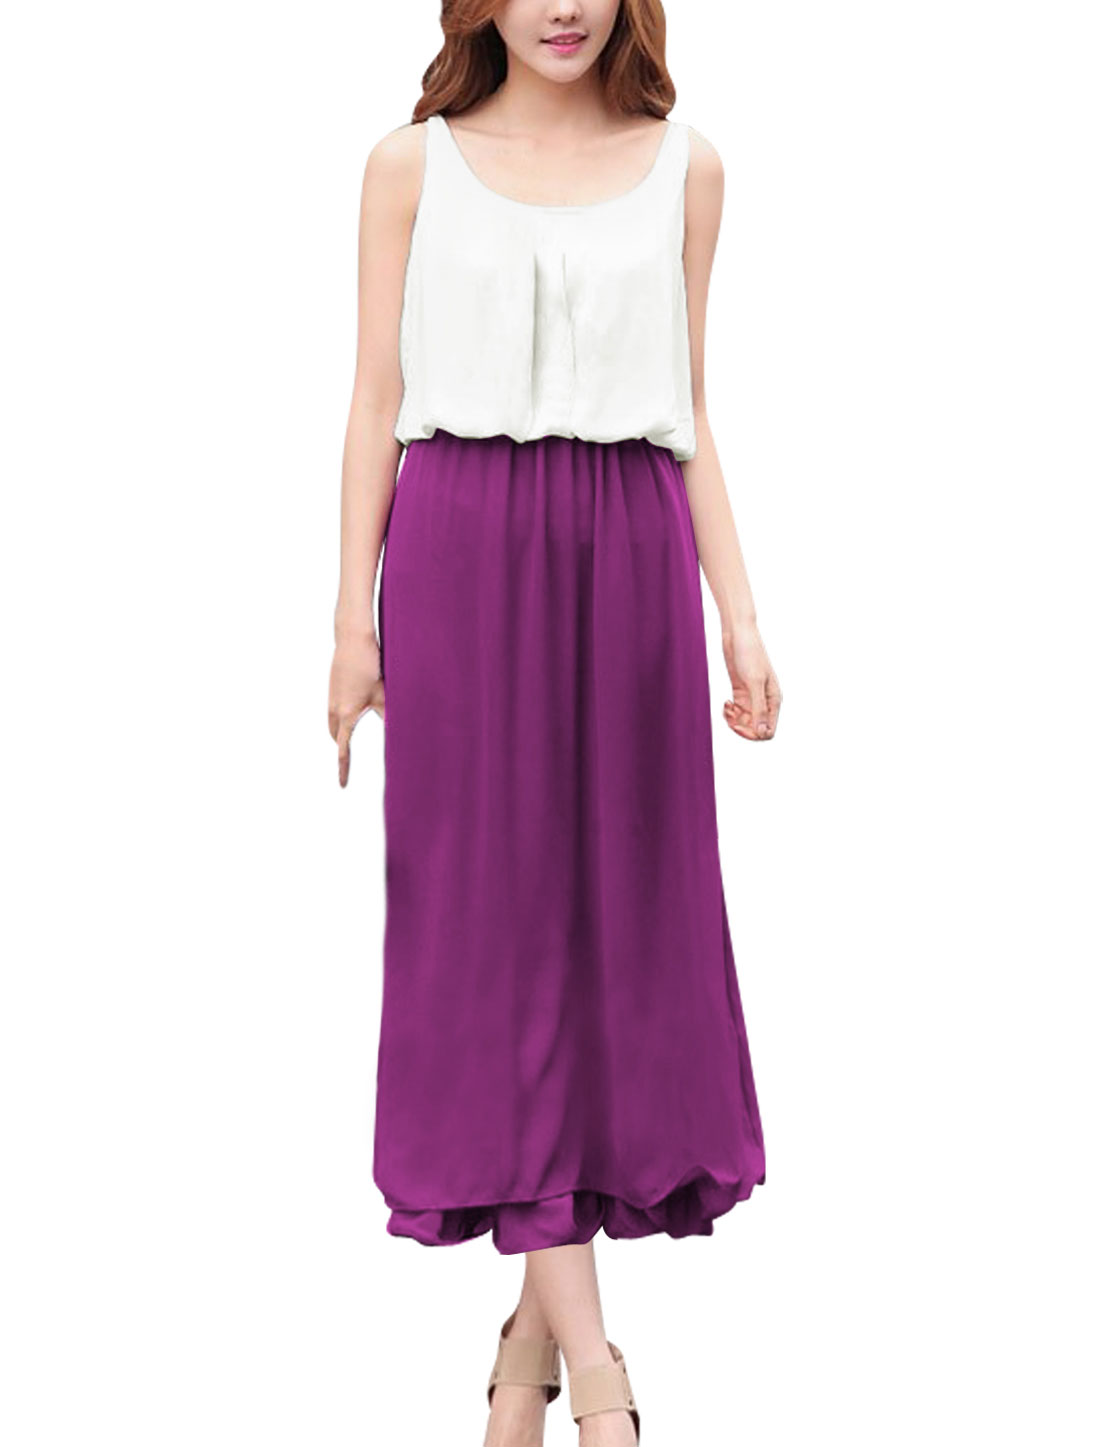 Lady Scoop Neck Elastic Waist Mid-Calf Lining Blouson Dress Purple White S